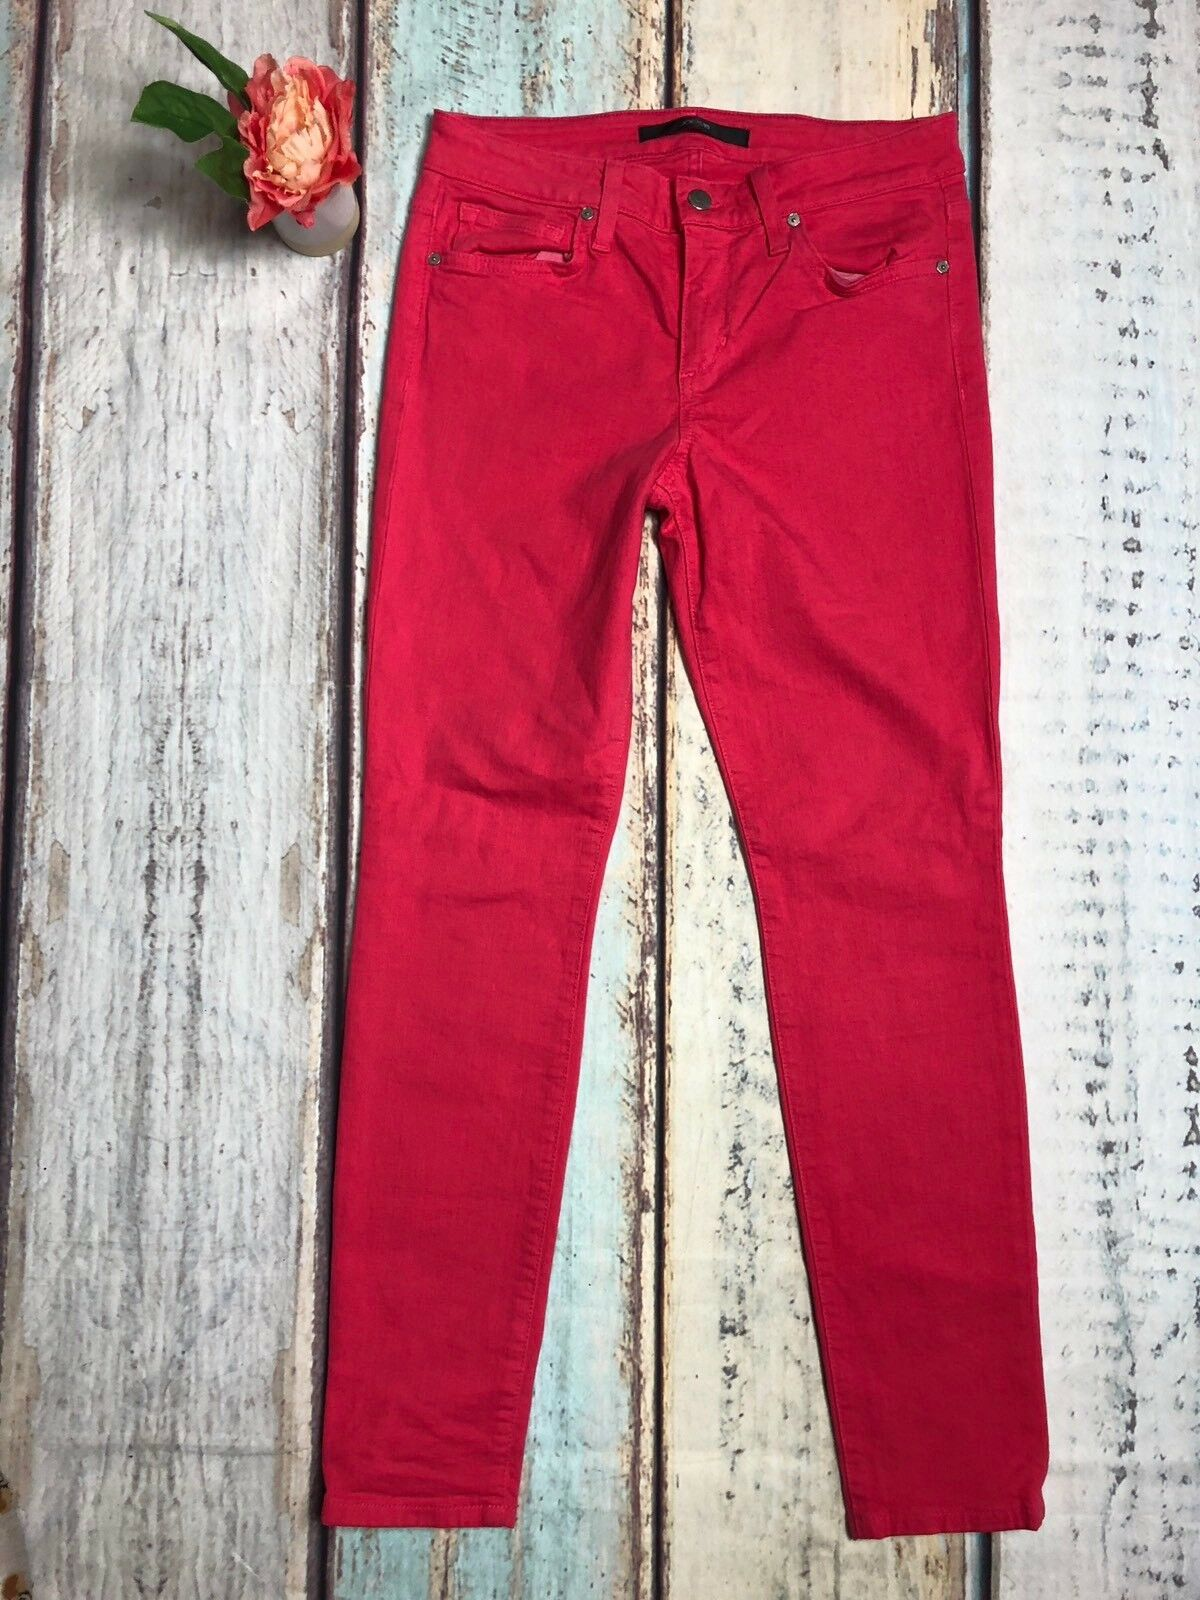 JOES Jeans Size 27 Hot Pink Skinny Ankle Jeans in Pink Glo Womens